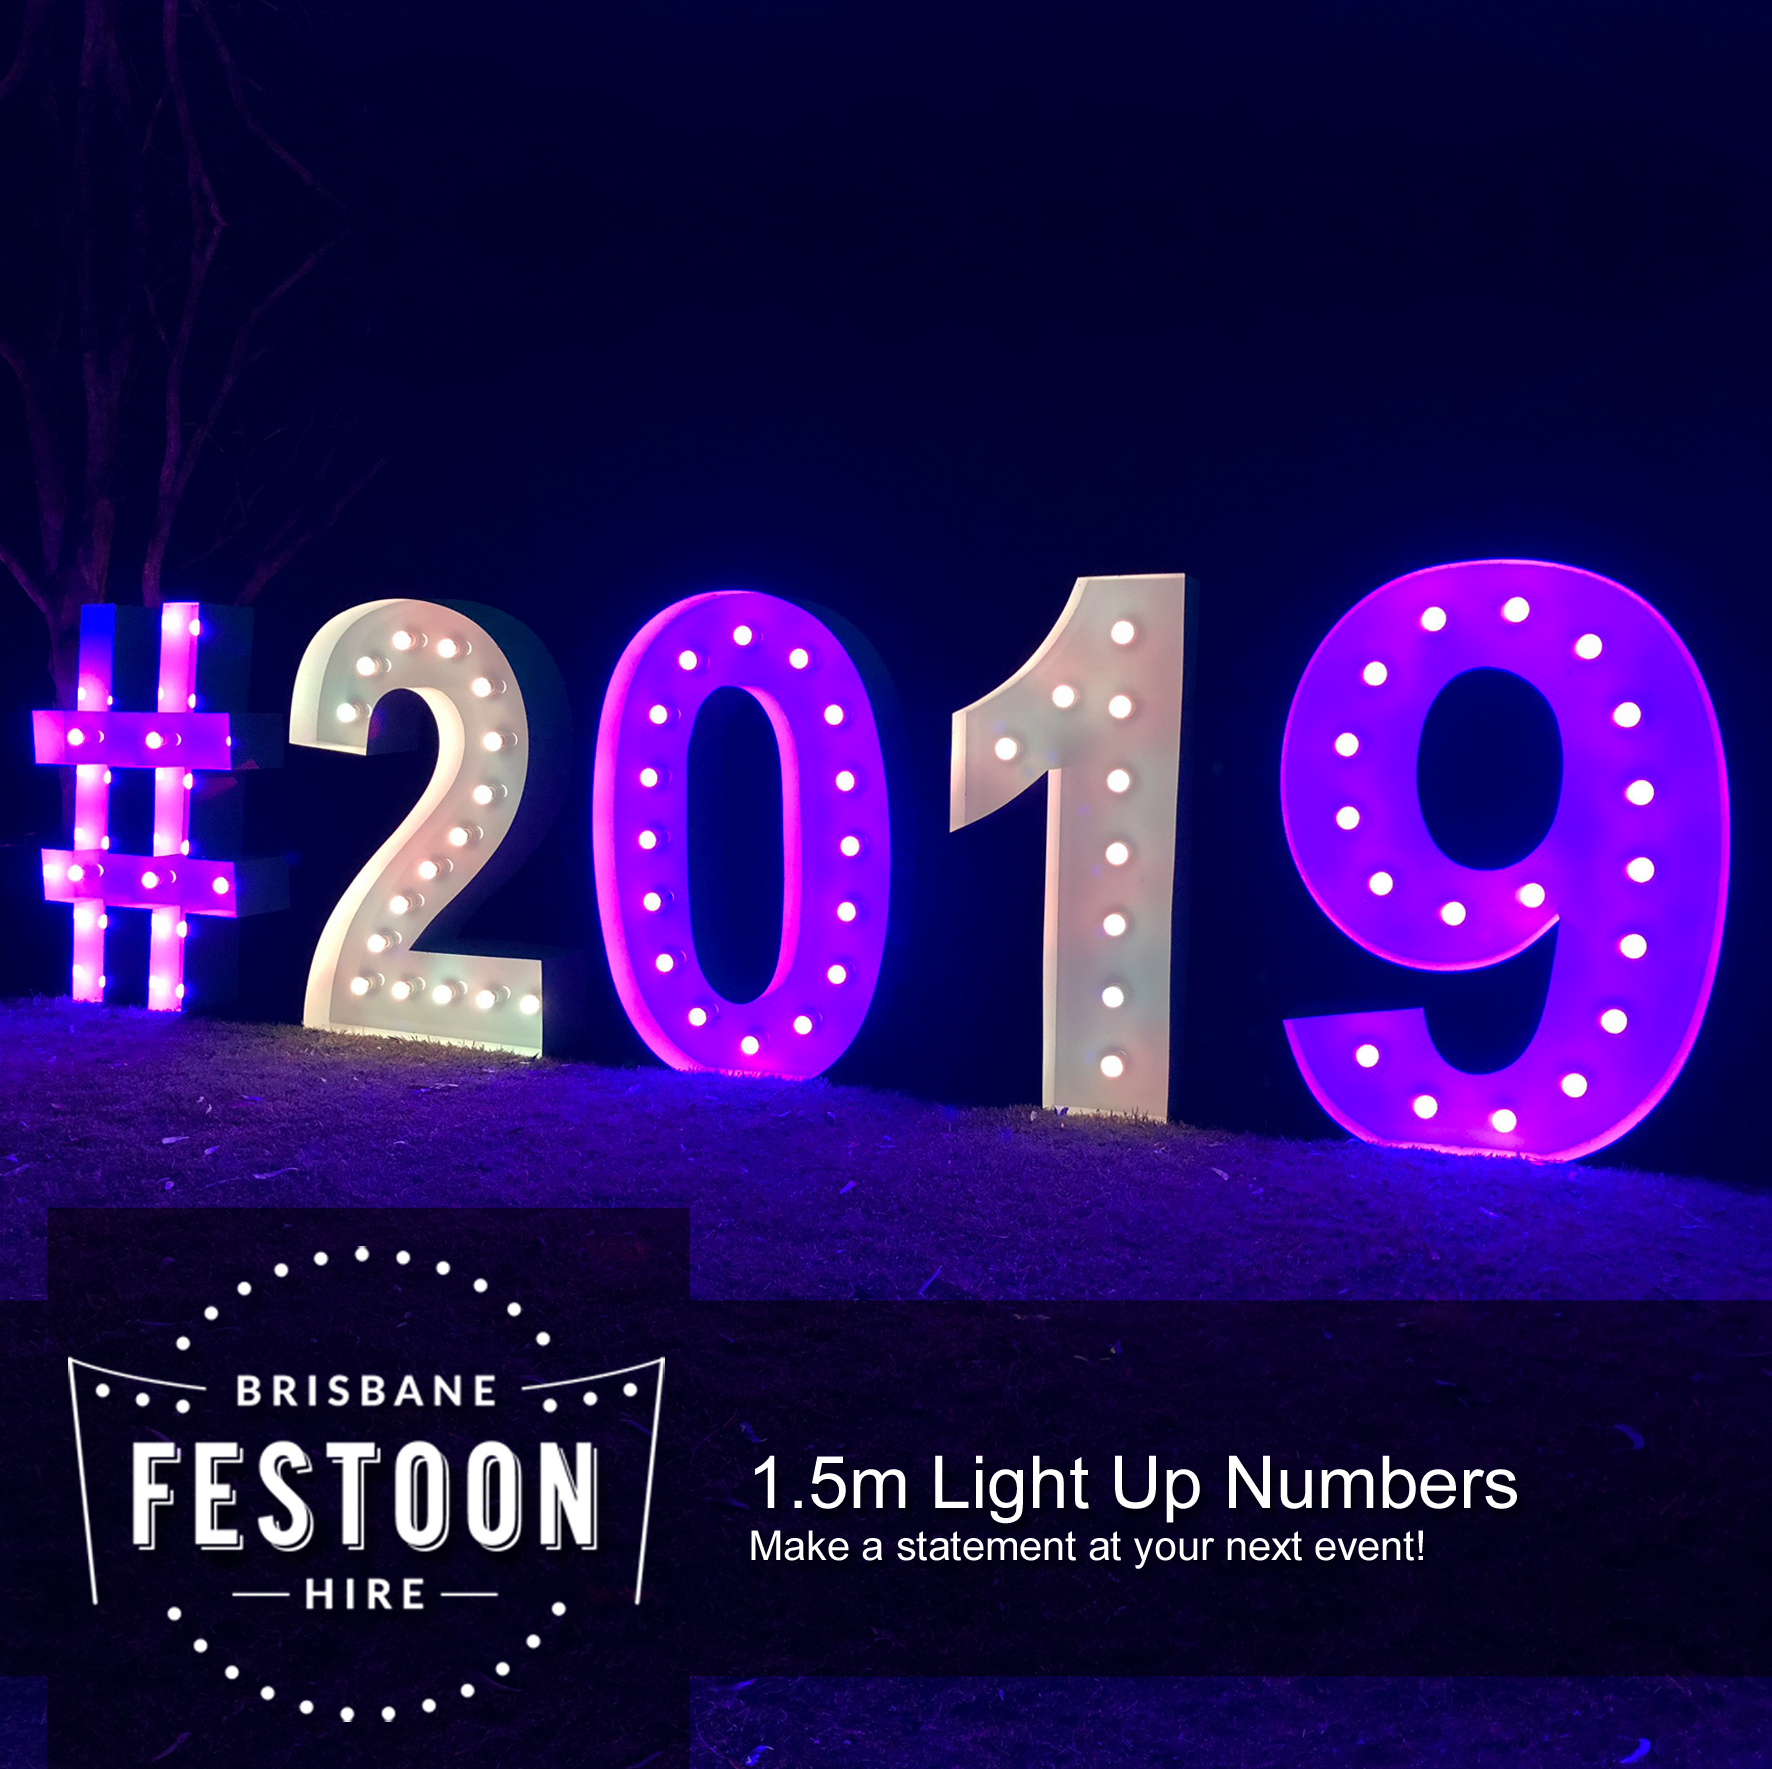 Brisbane Festoon Hire - Light Up Number Hire.jpg